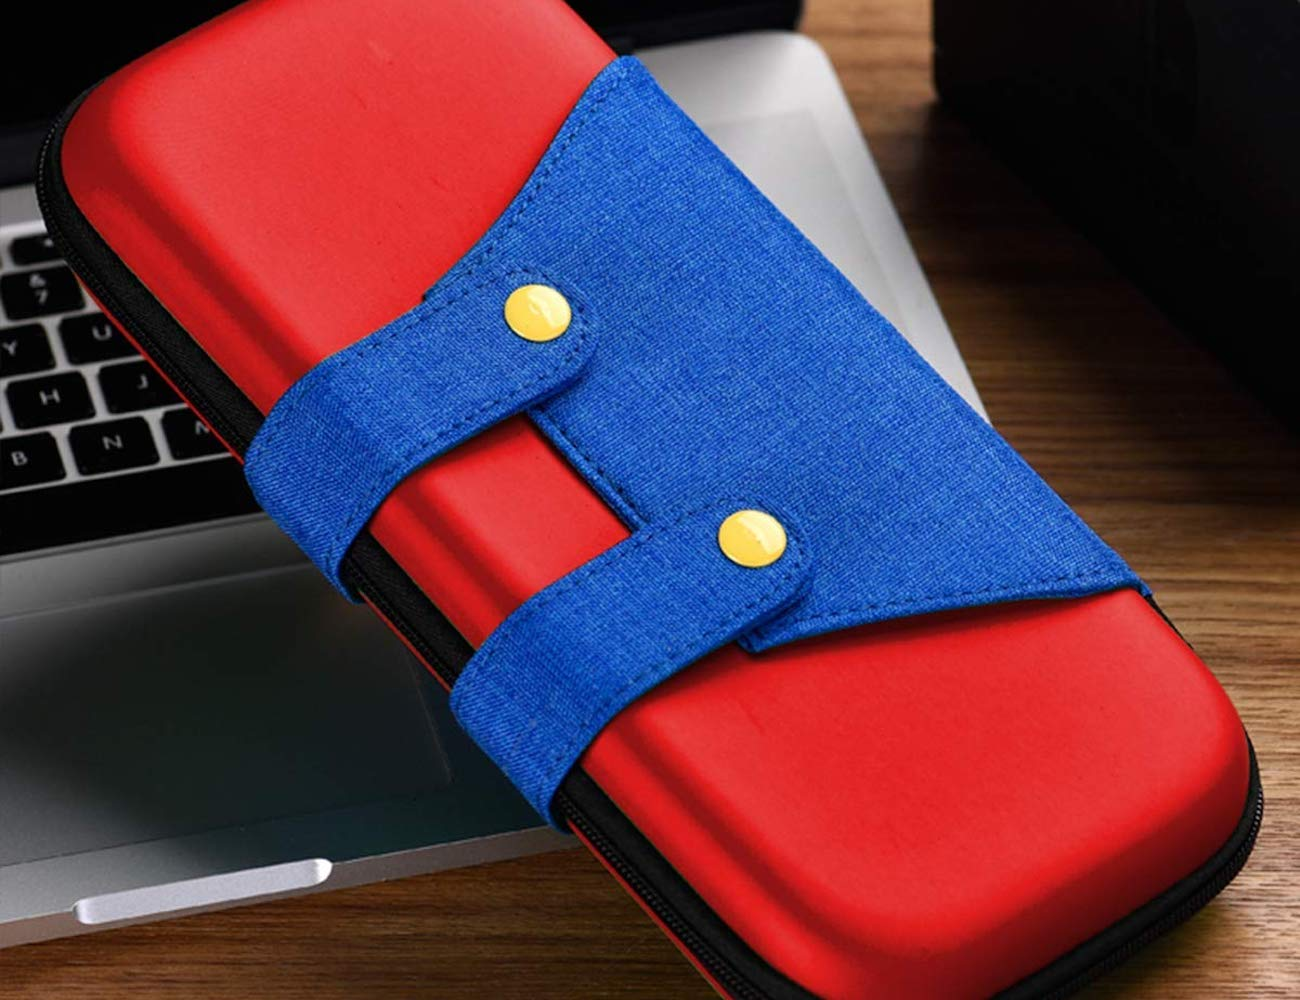 10 Must-have gaming accessories that will help you level up - Nintendo Switch Case 02